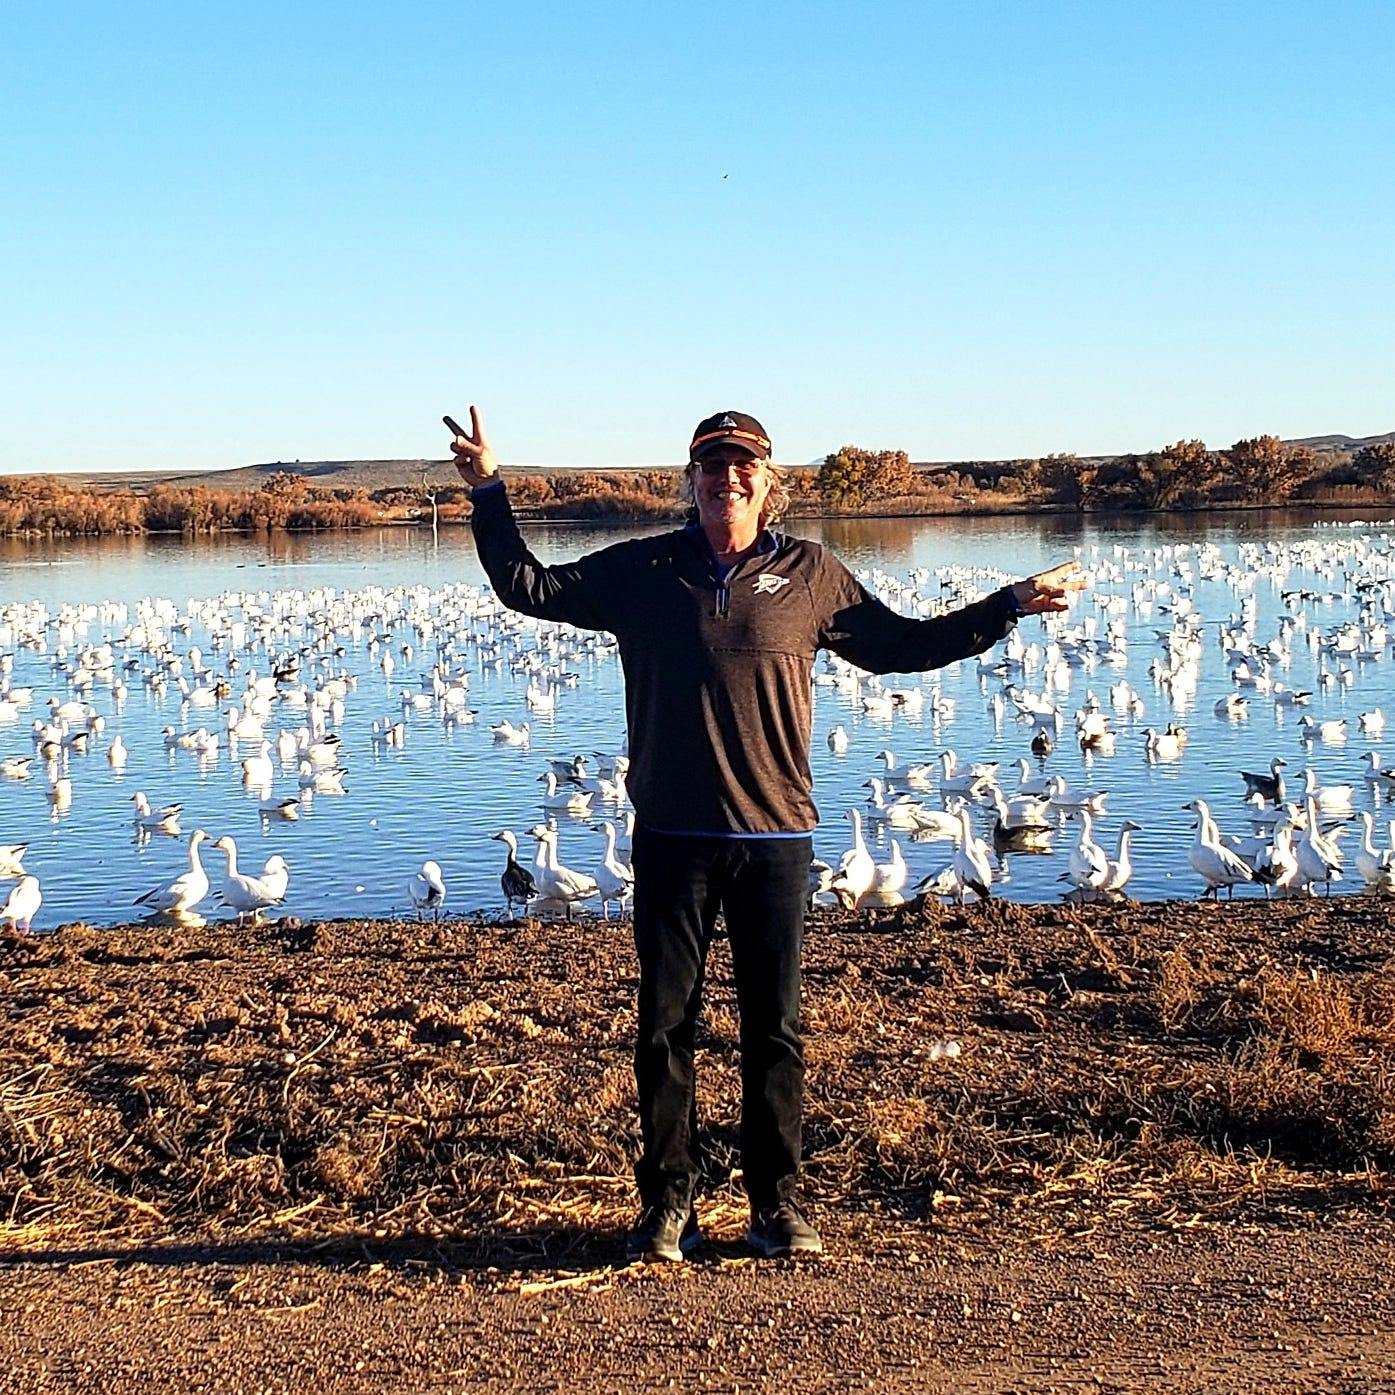 Happy Camper: Watching geese, cranes and ducks in the Bosque